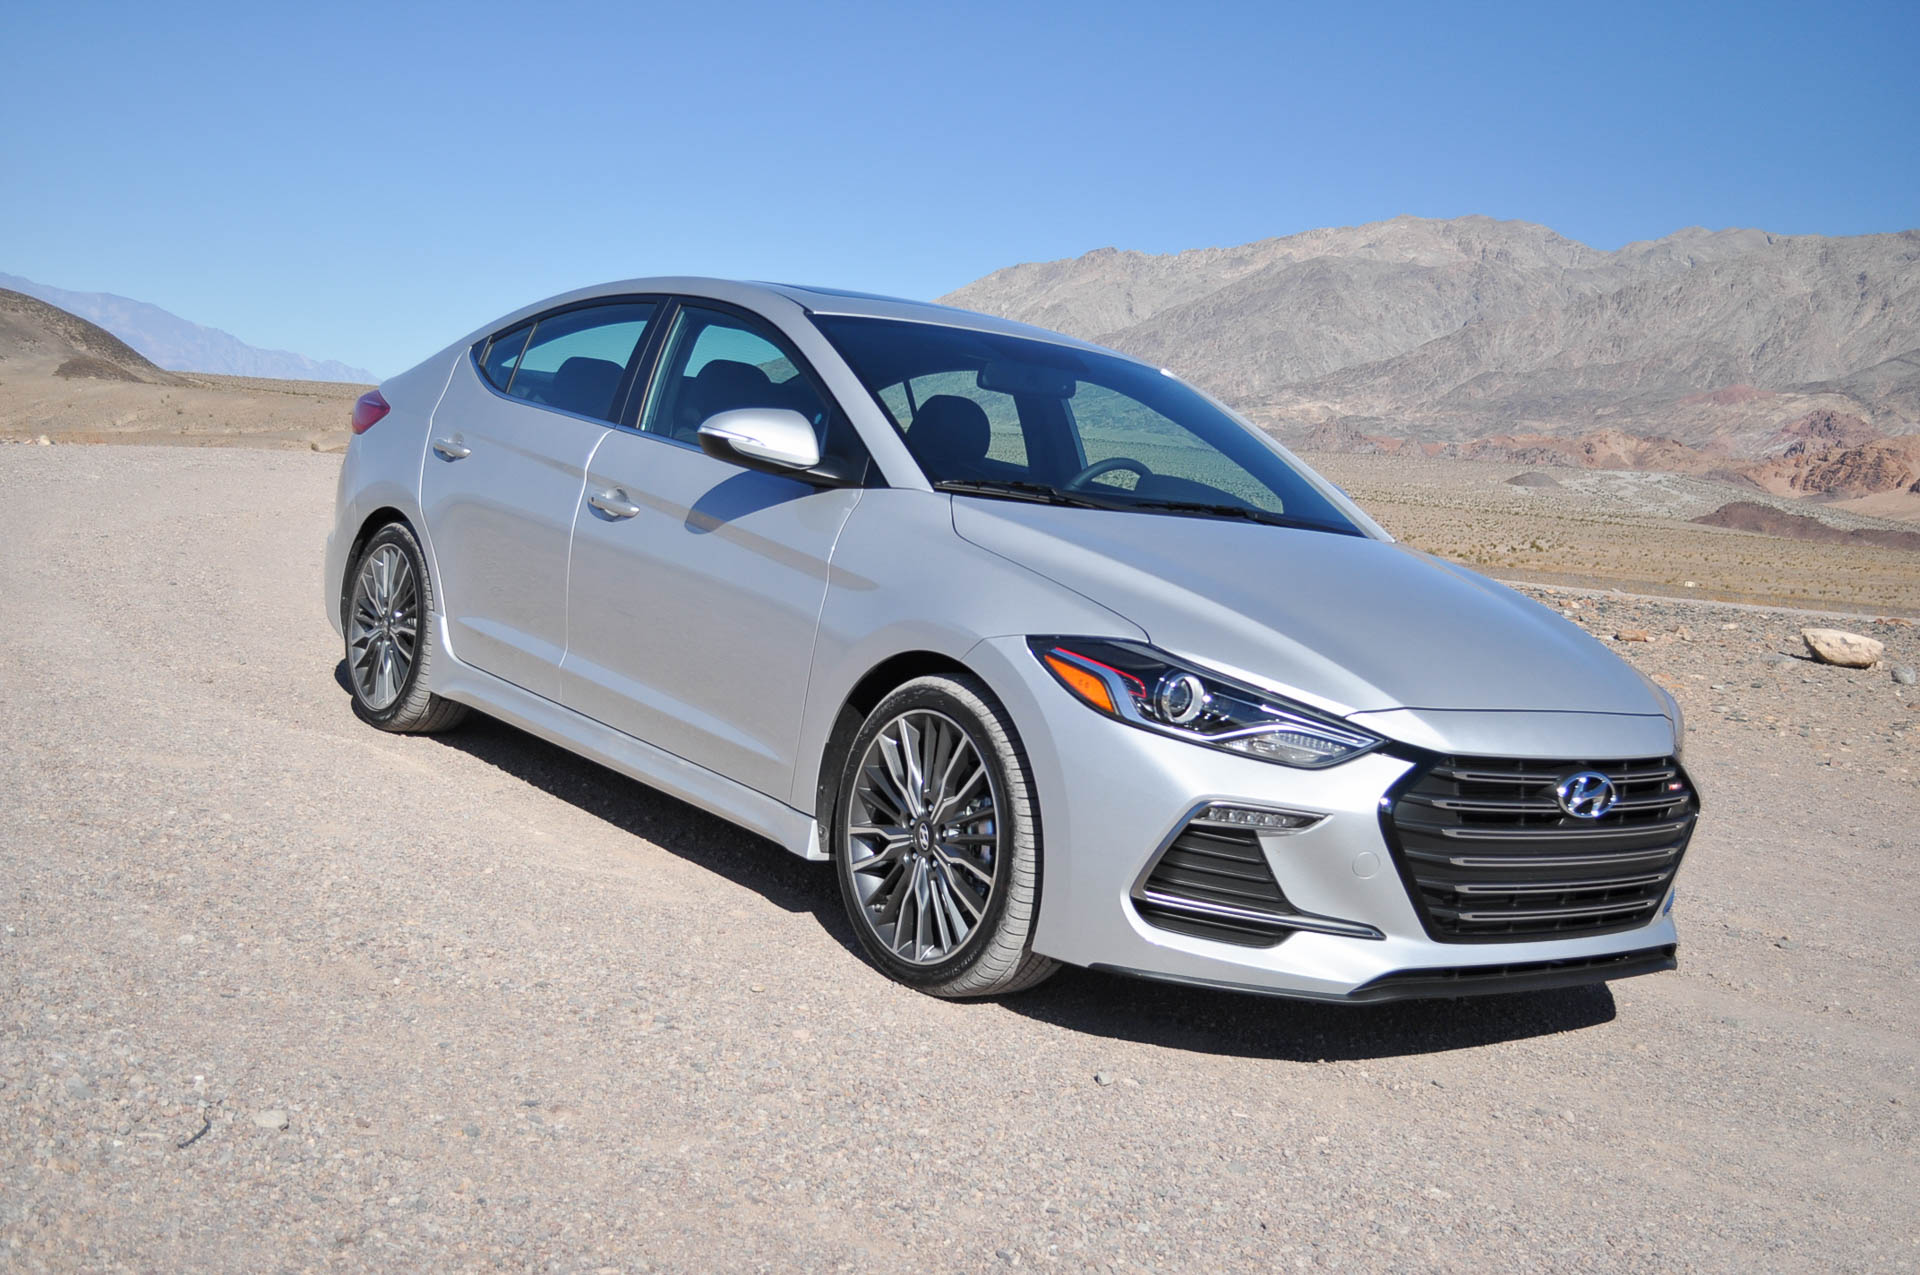 Cars For Sale In Indianapolis >> 2017 Hyundai Elantra Sport first drive: close encounter of a turbocharged kind